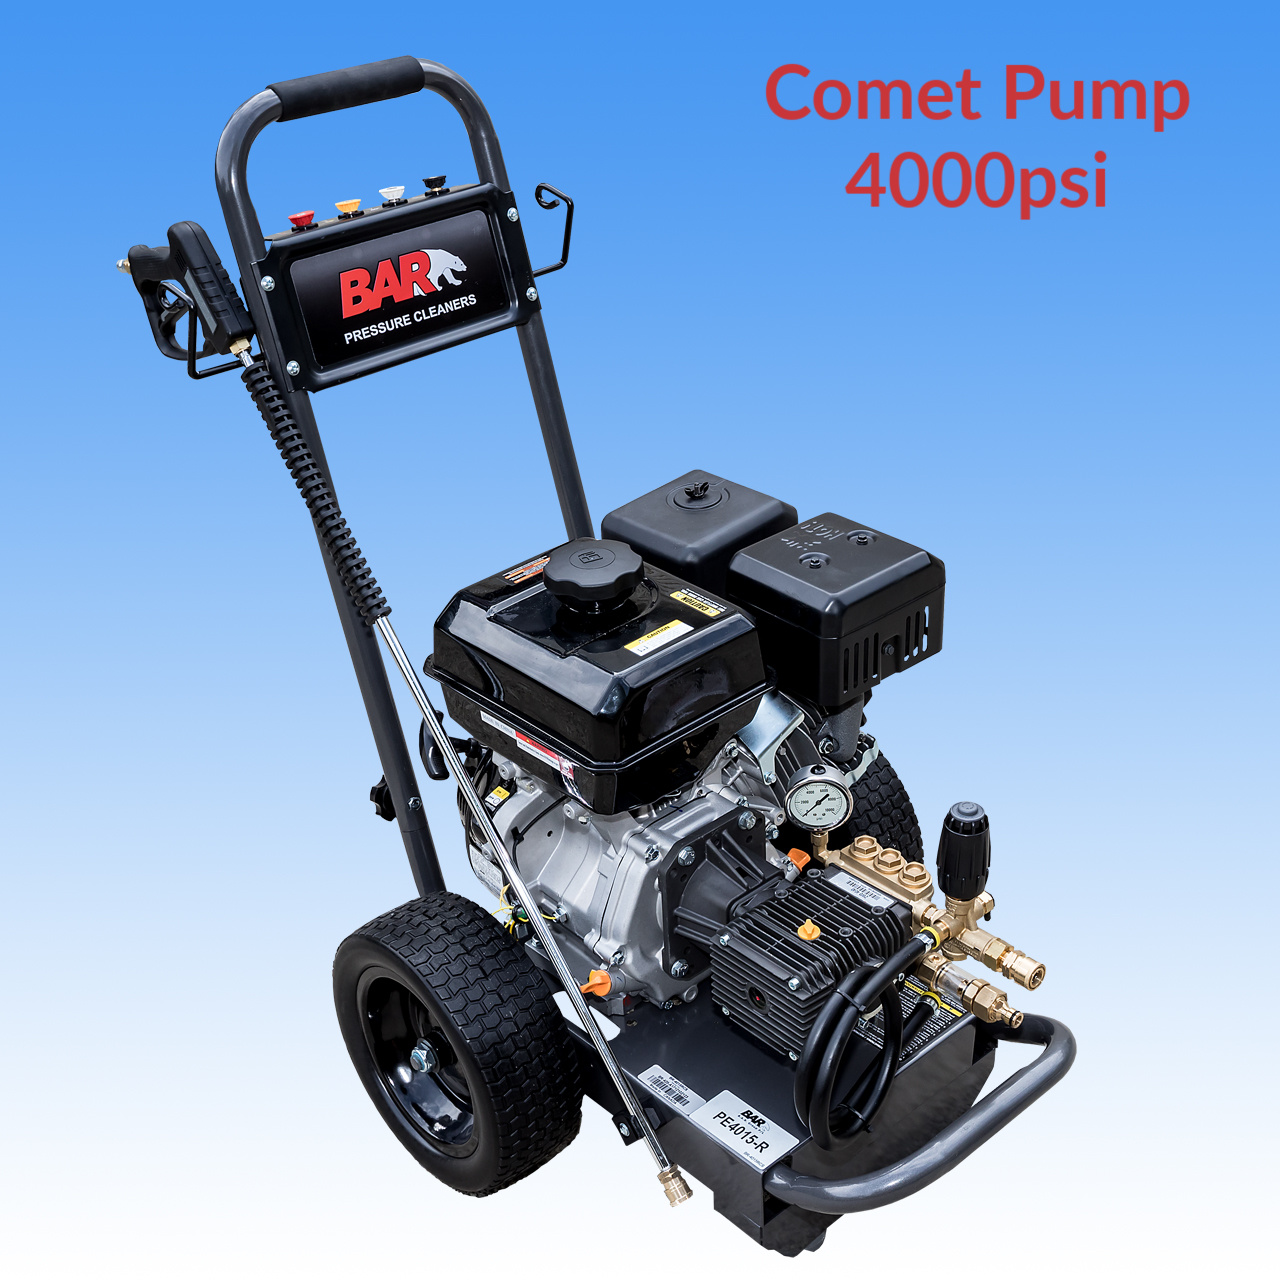 Mid Range Start Up Package With 15hp BE Power Ease Petrol Engine High Pressure Washer With COMET Pump